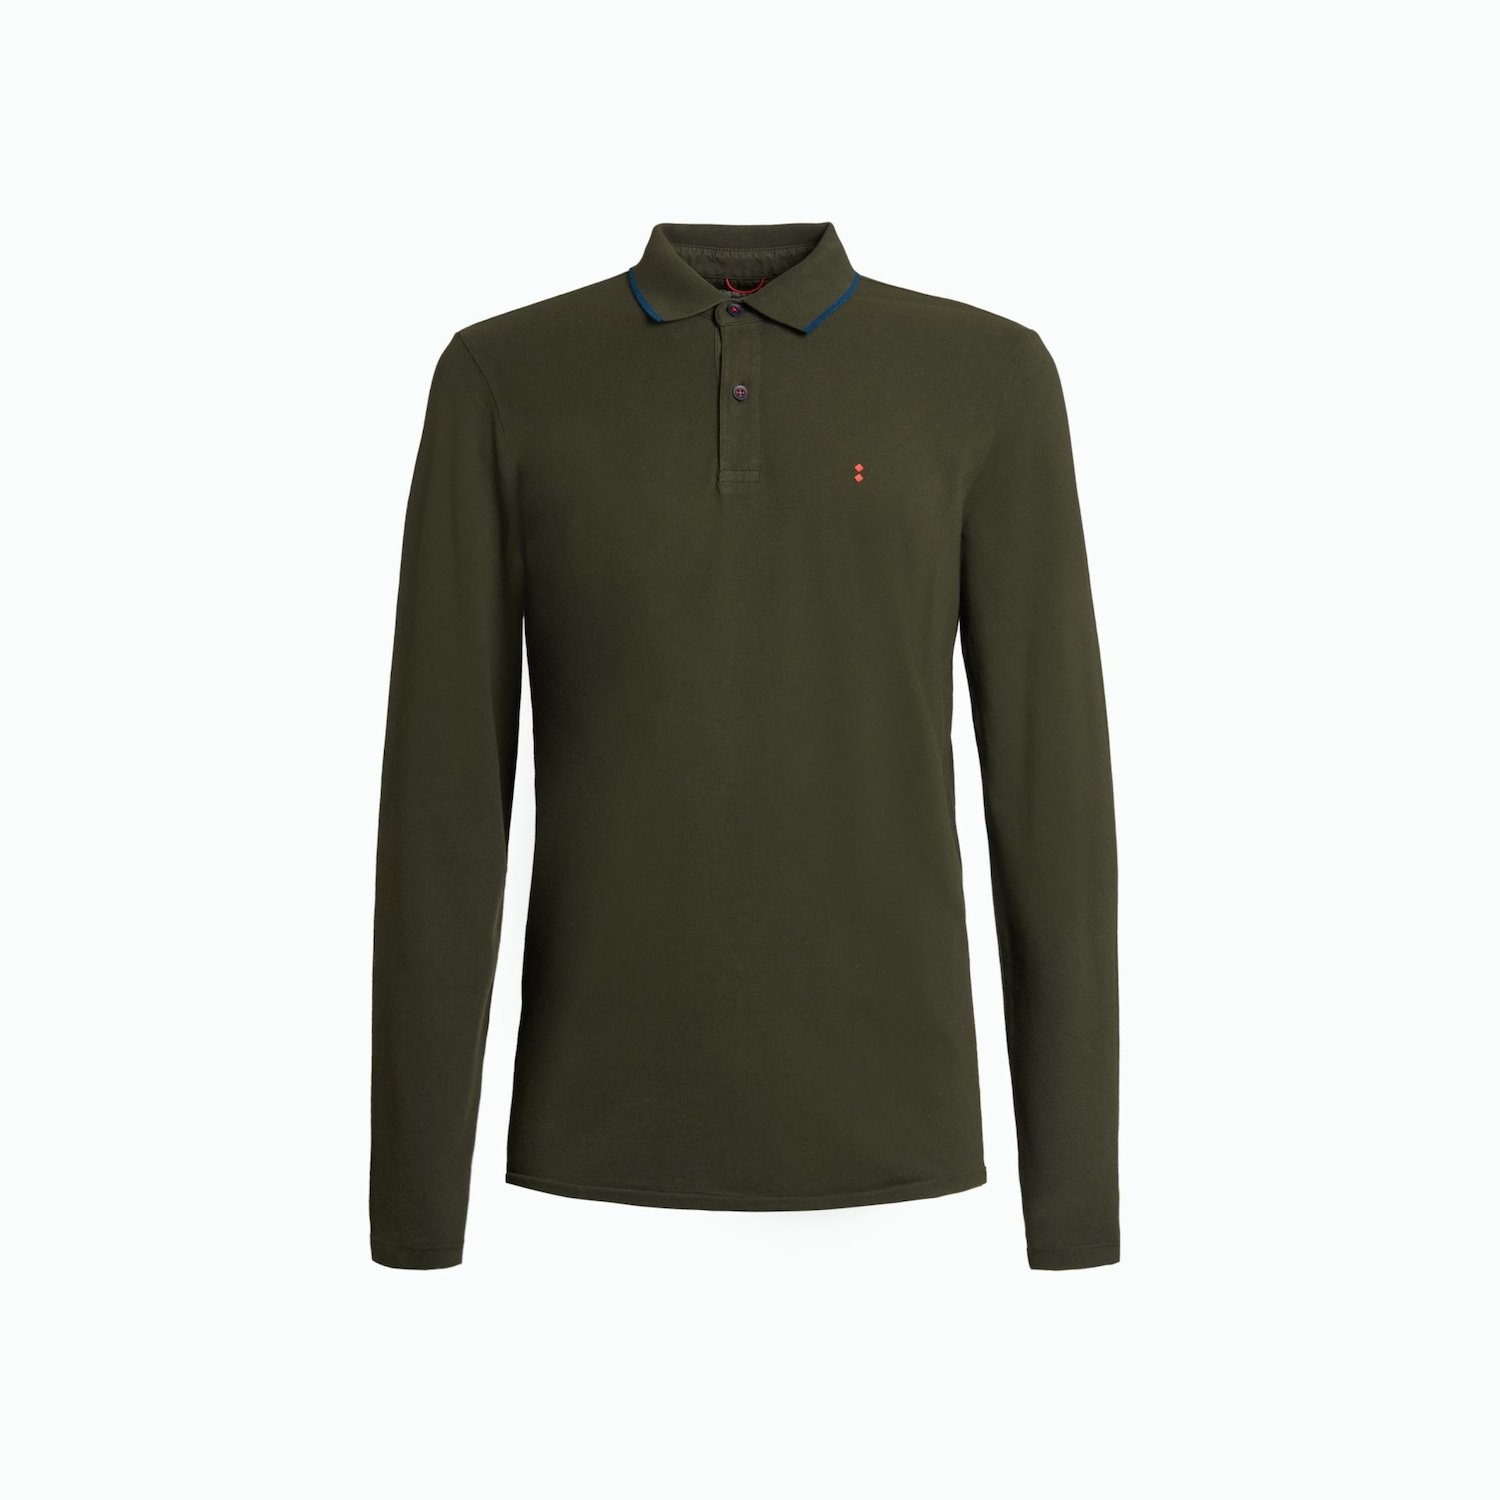 B2 polo shirt - Sea Green